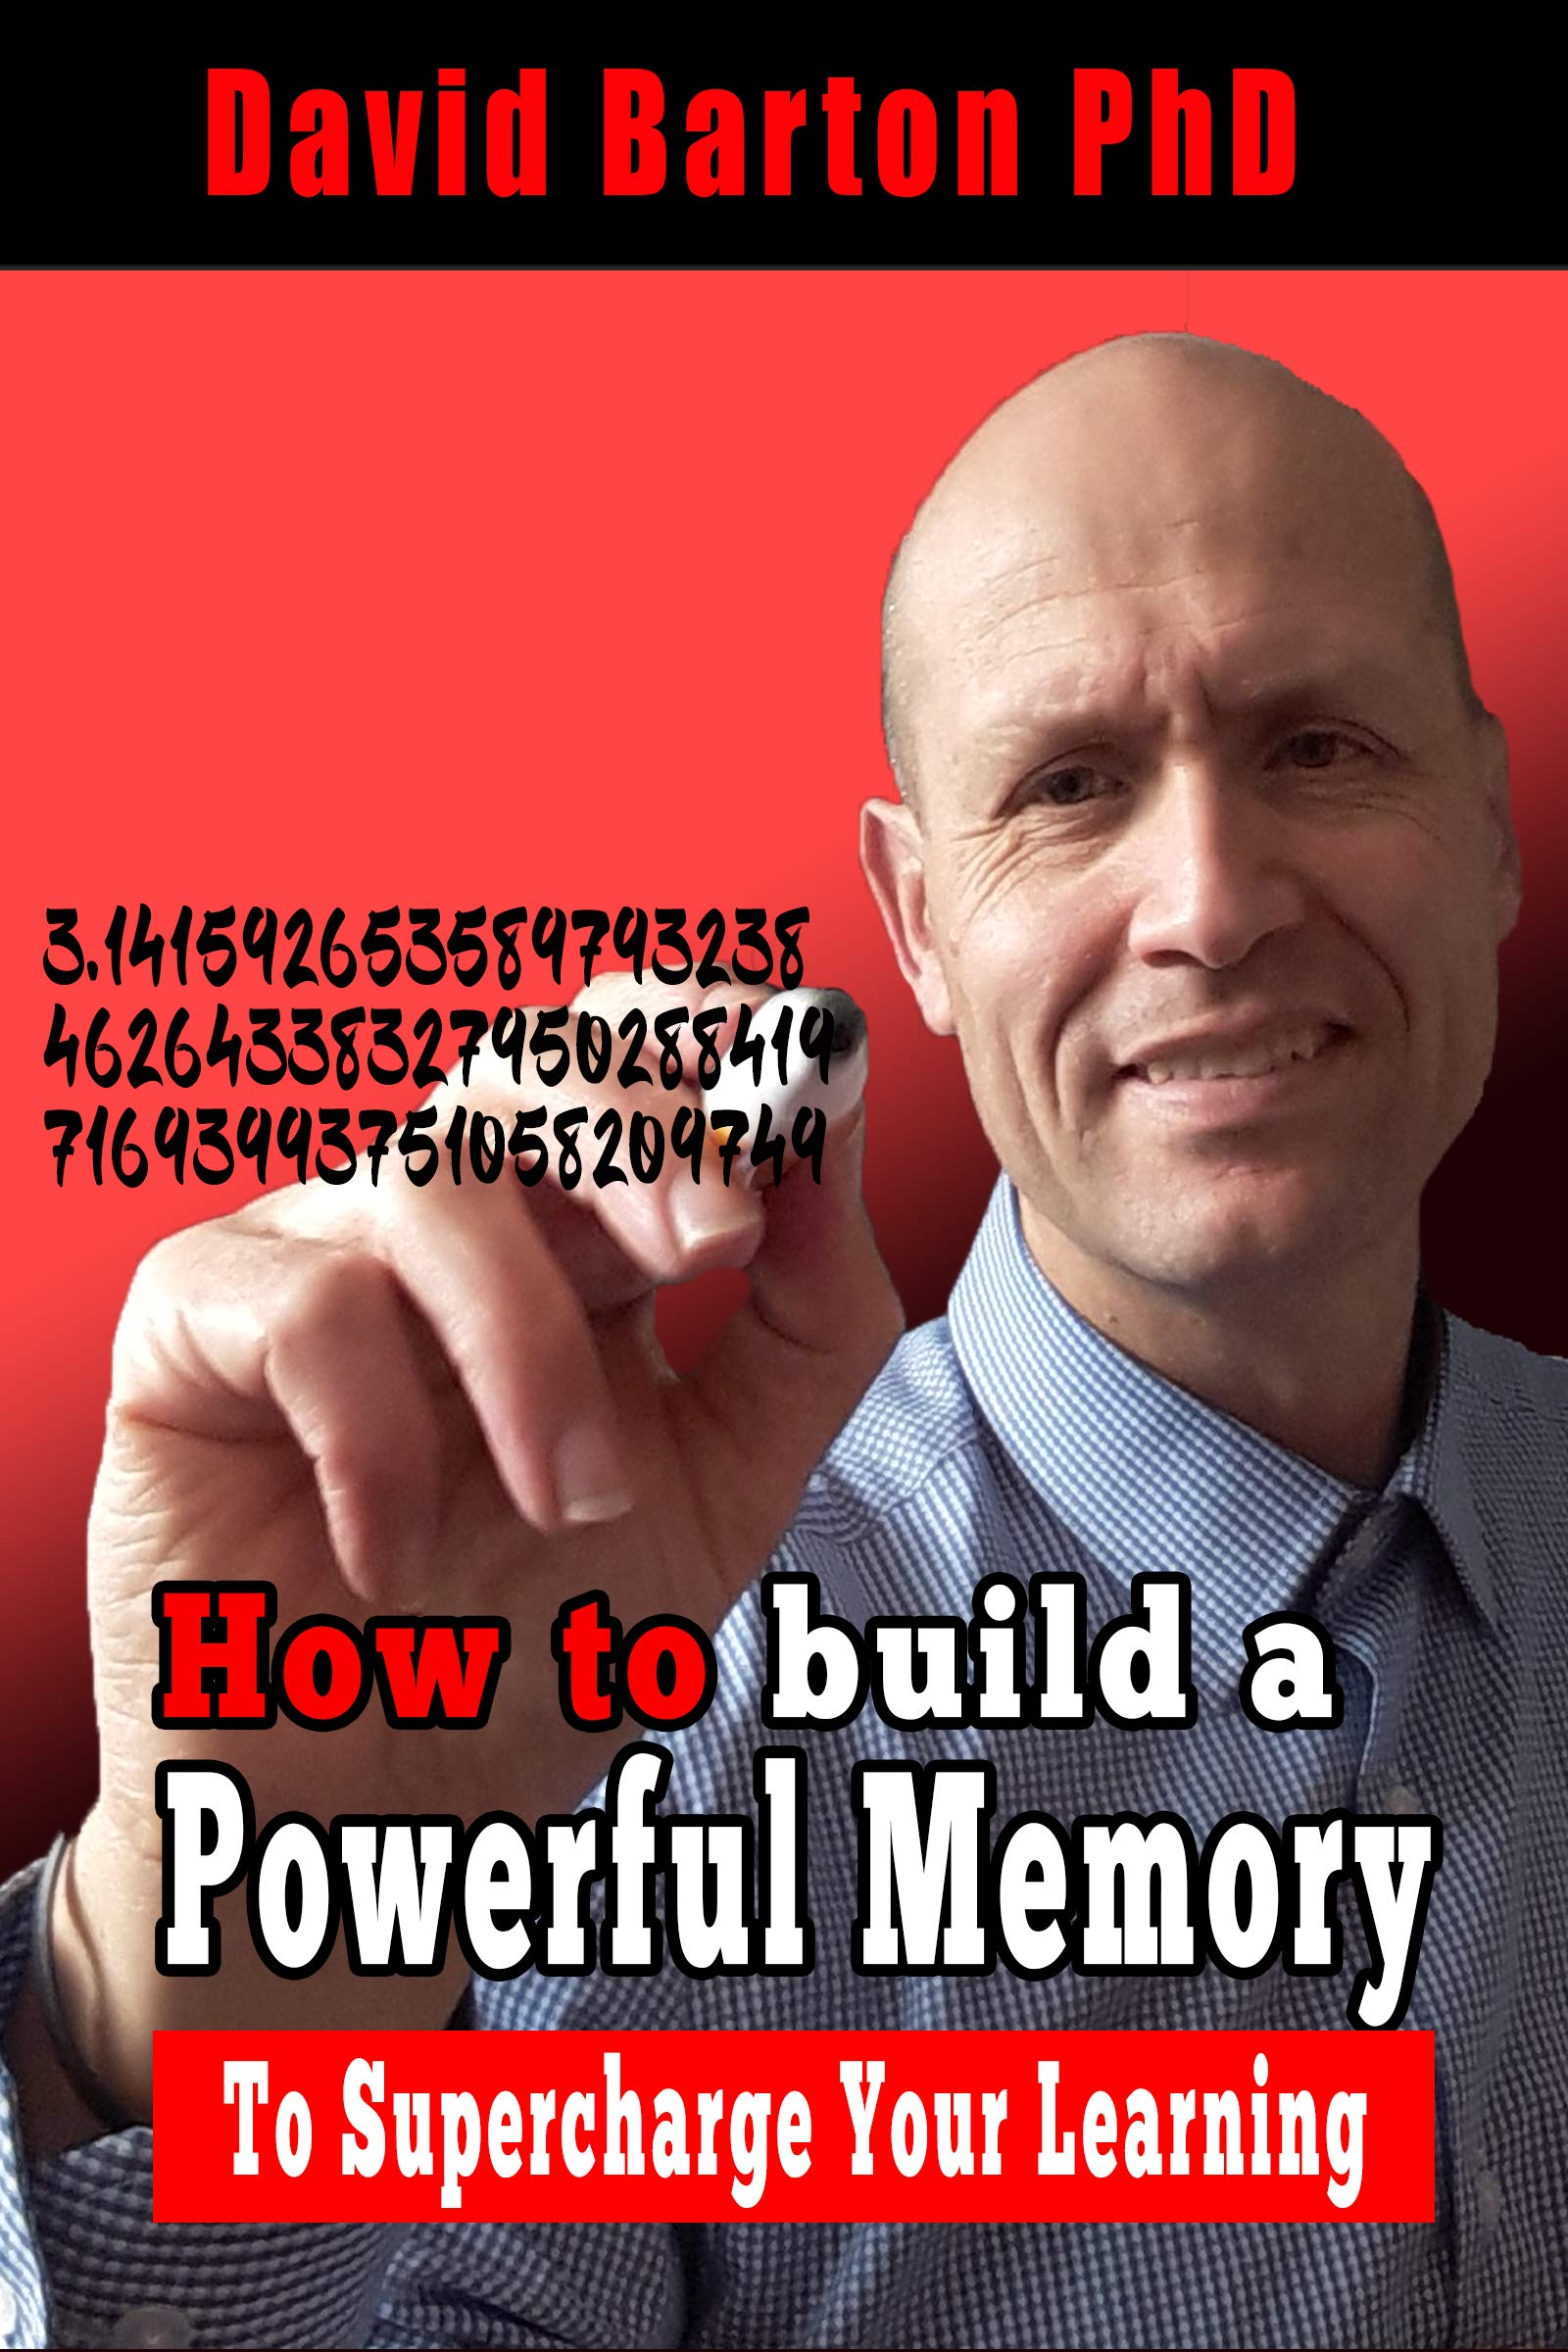 How to Build a Powerful Memory to Supercharge your Learning: Includes a Live Demonstration of Pi Recalled on a Whiteboard to 500 Decimal Places